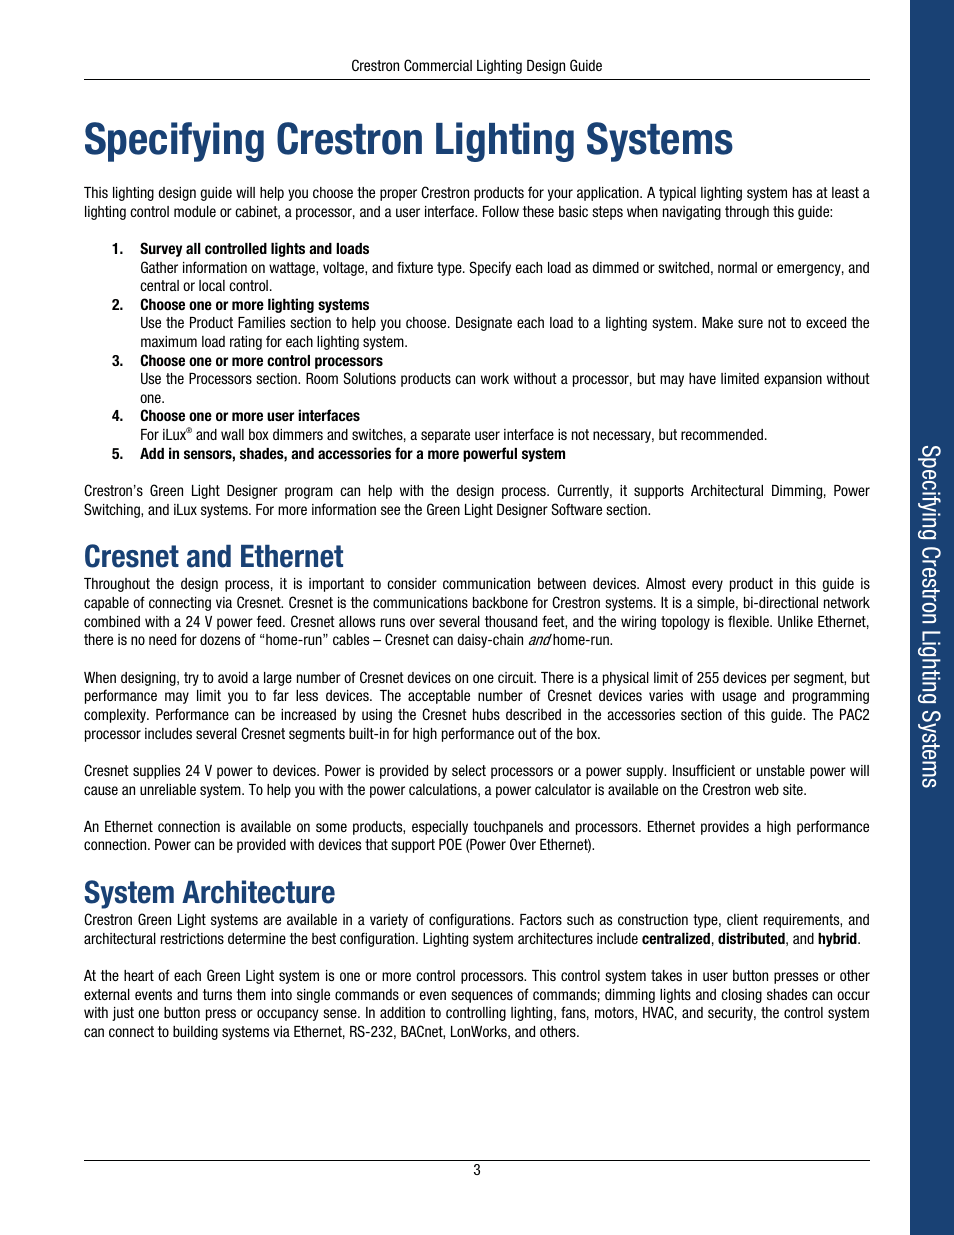 Crestron Lighting Control Modules Home Cls C6 Wiring Diagram Cresnet And Ethernet System Architecture Specifying